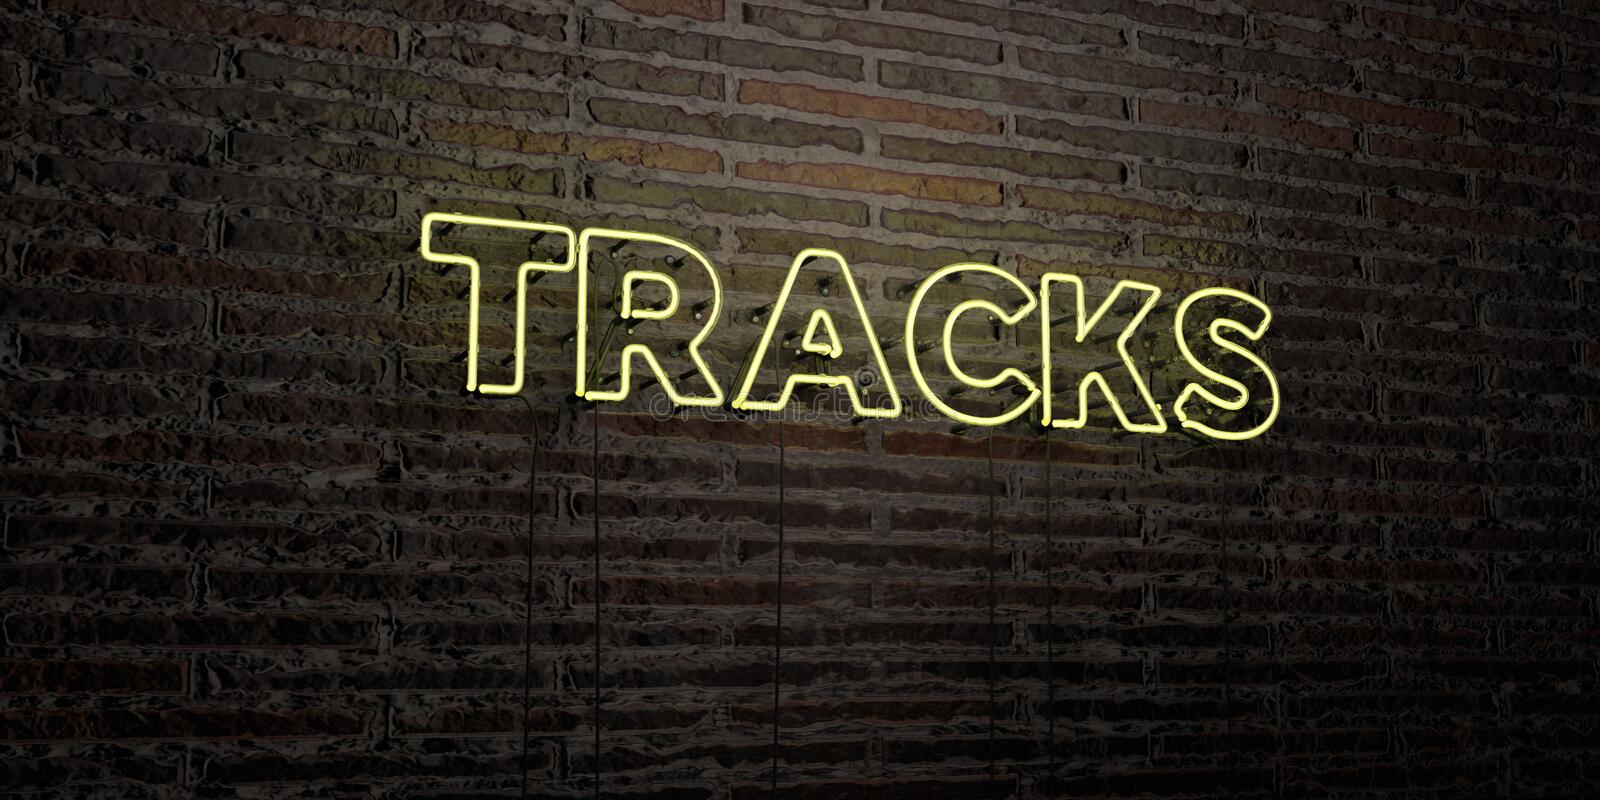 TRACKS -Realistic Neon Sign on Brick Wall background - 3D rendered royalty free stock image vector illustration